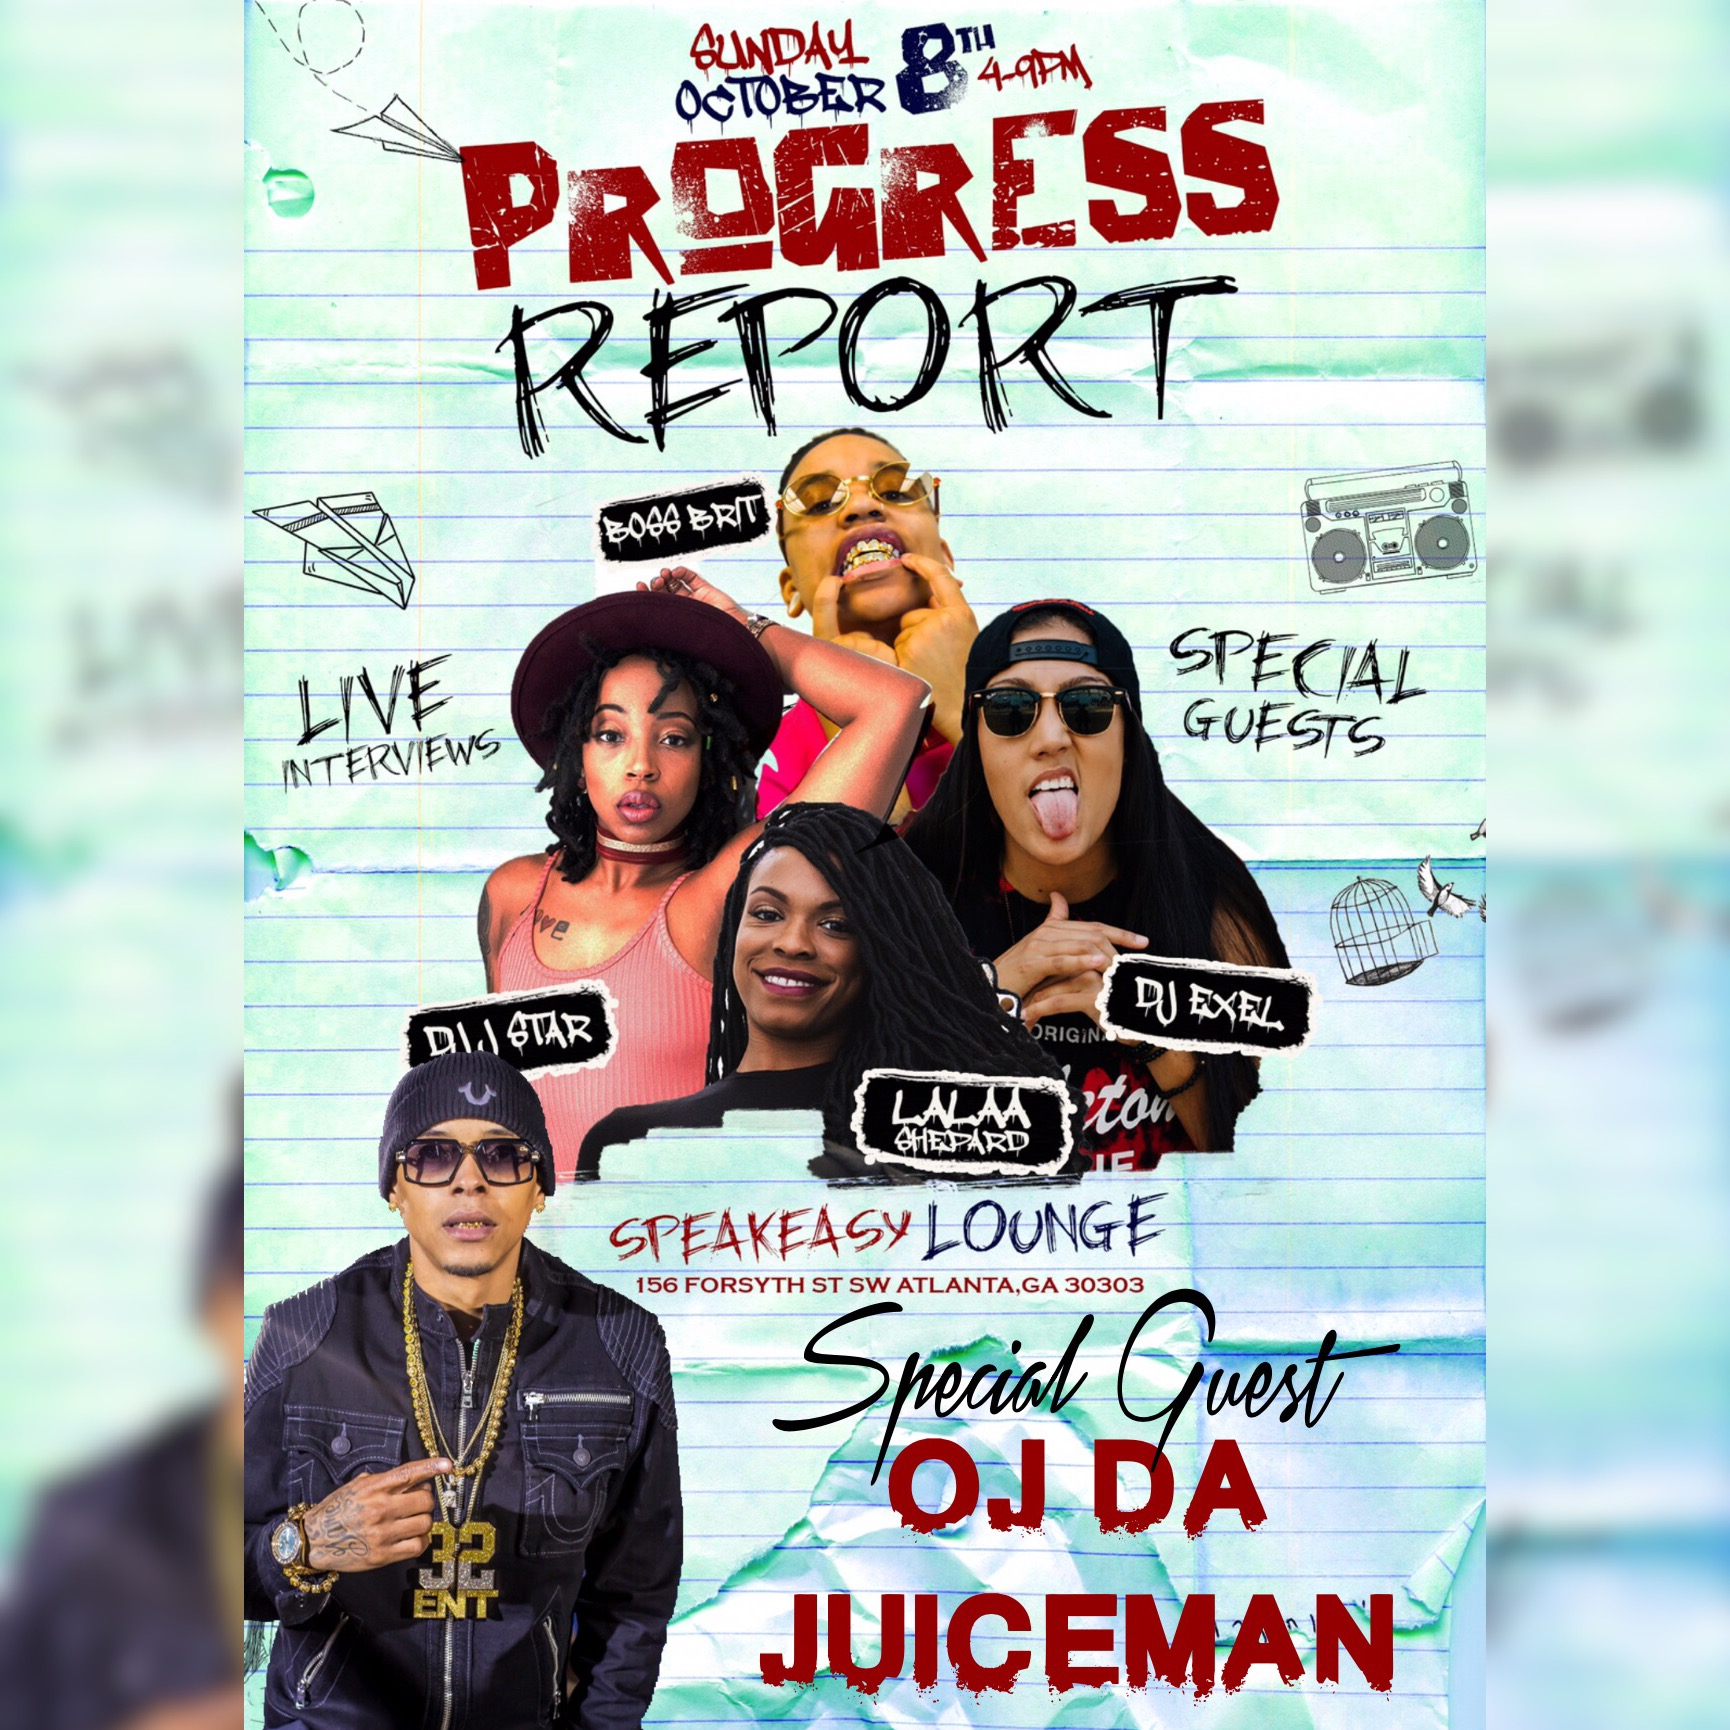 Catch OJ Da Juiceman + Many Other's Live In Concert Sunday, October 8th 4PM In ATL [The Progress Report Mini Concert]